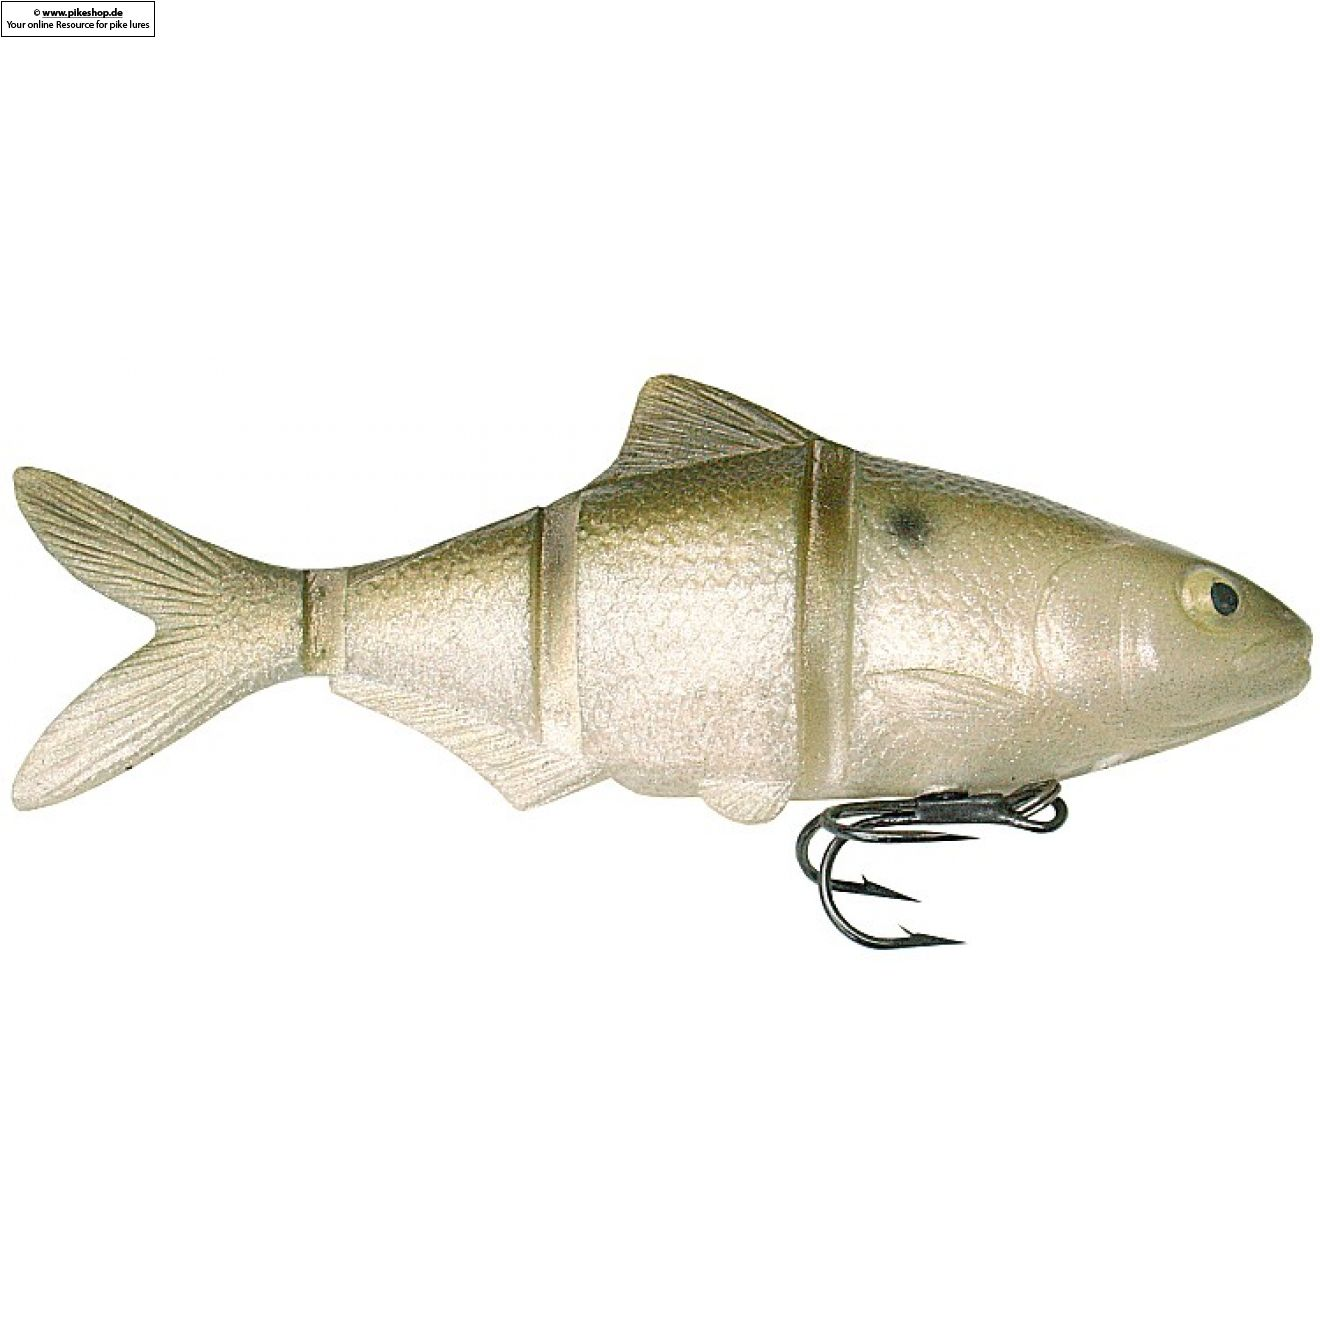 Catch22 (Slow Sinker) - 15cm (6 Zoll) - CA Threadfin Shad Green